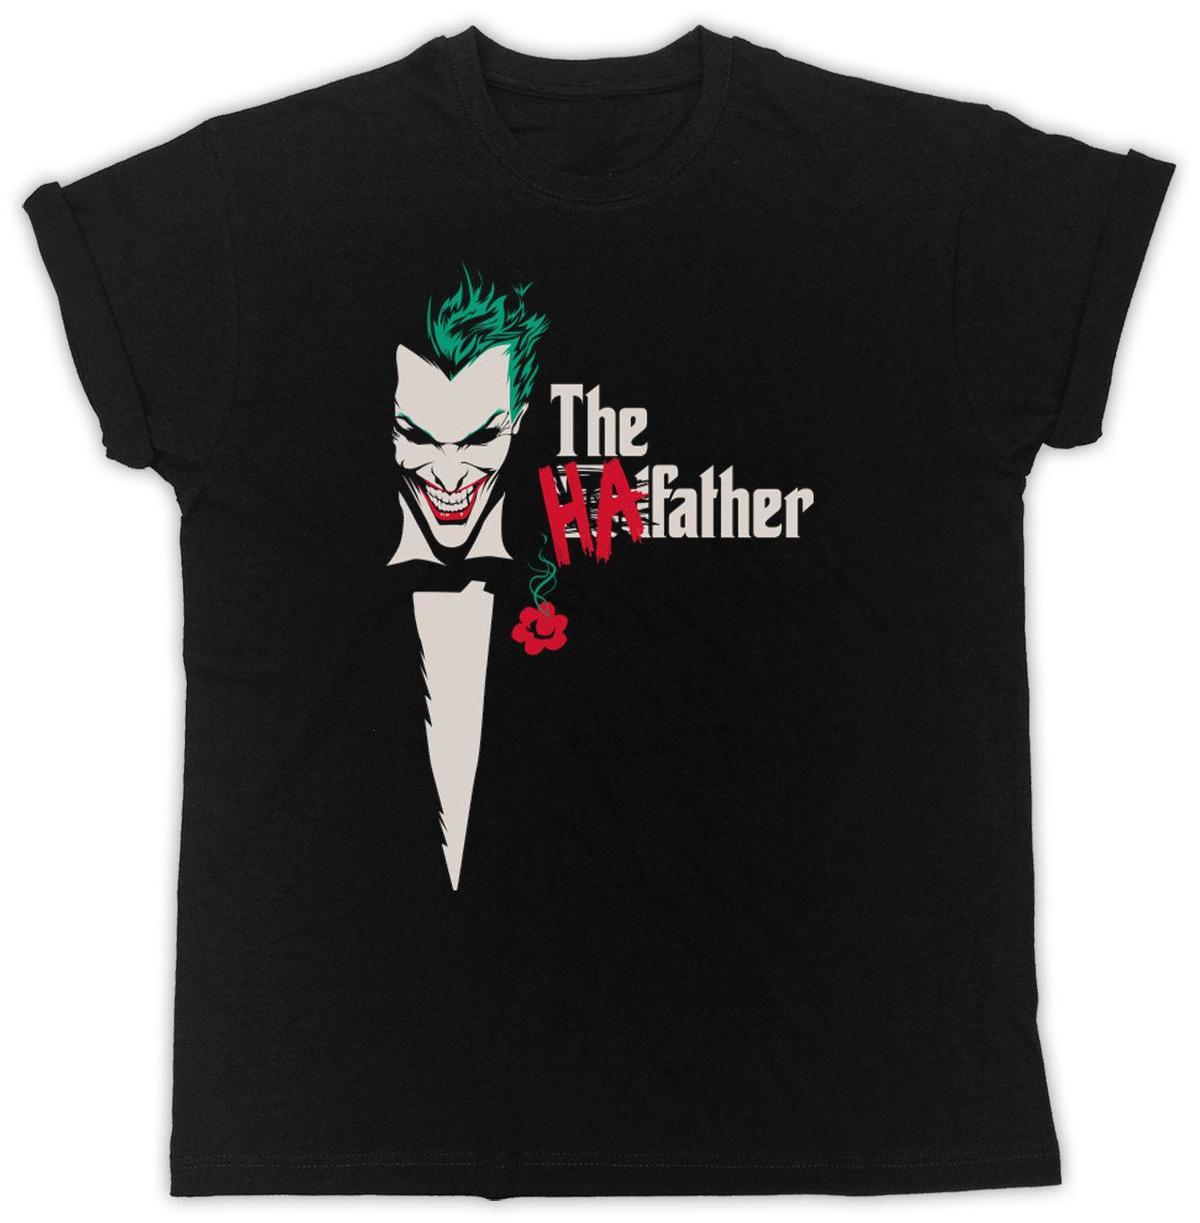 f21fc769eeb0 Batman The Dark Knight Joker Ha Ha T Shirt Heath Ledger Suicide Squad  Printed Men T Shirt Short Sleeve Funny Tee Shirts T Shirt Of The Day Buy  Tshirts From ...